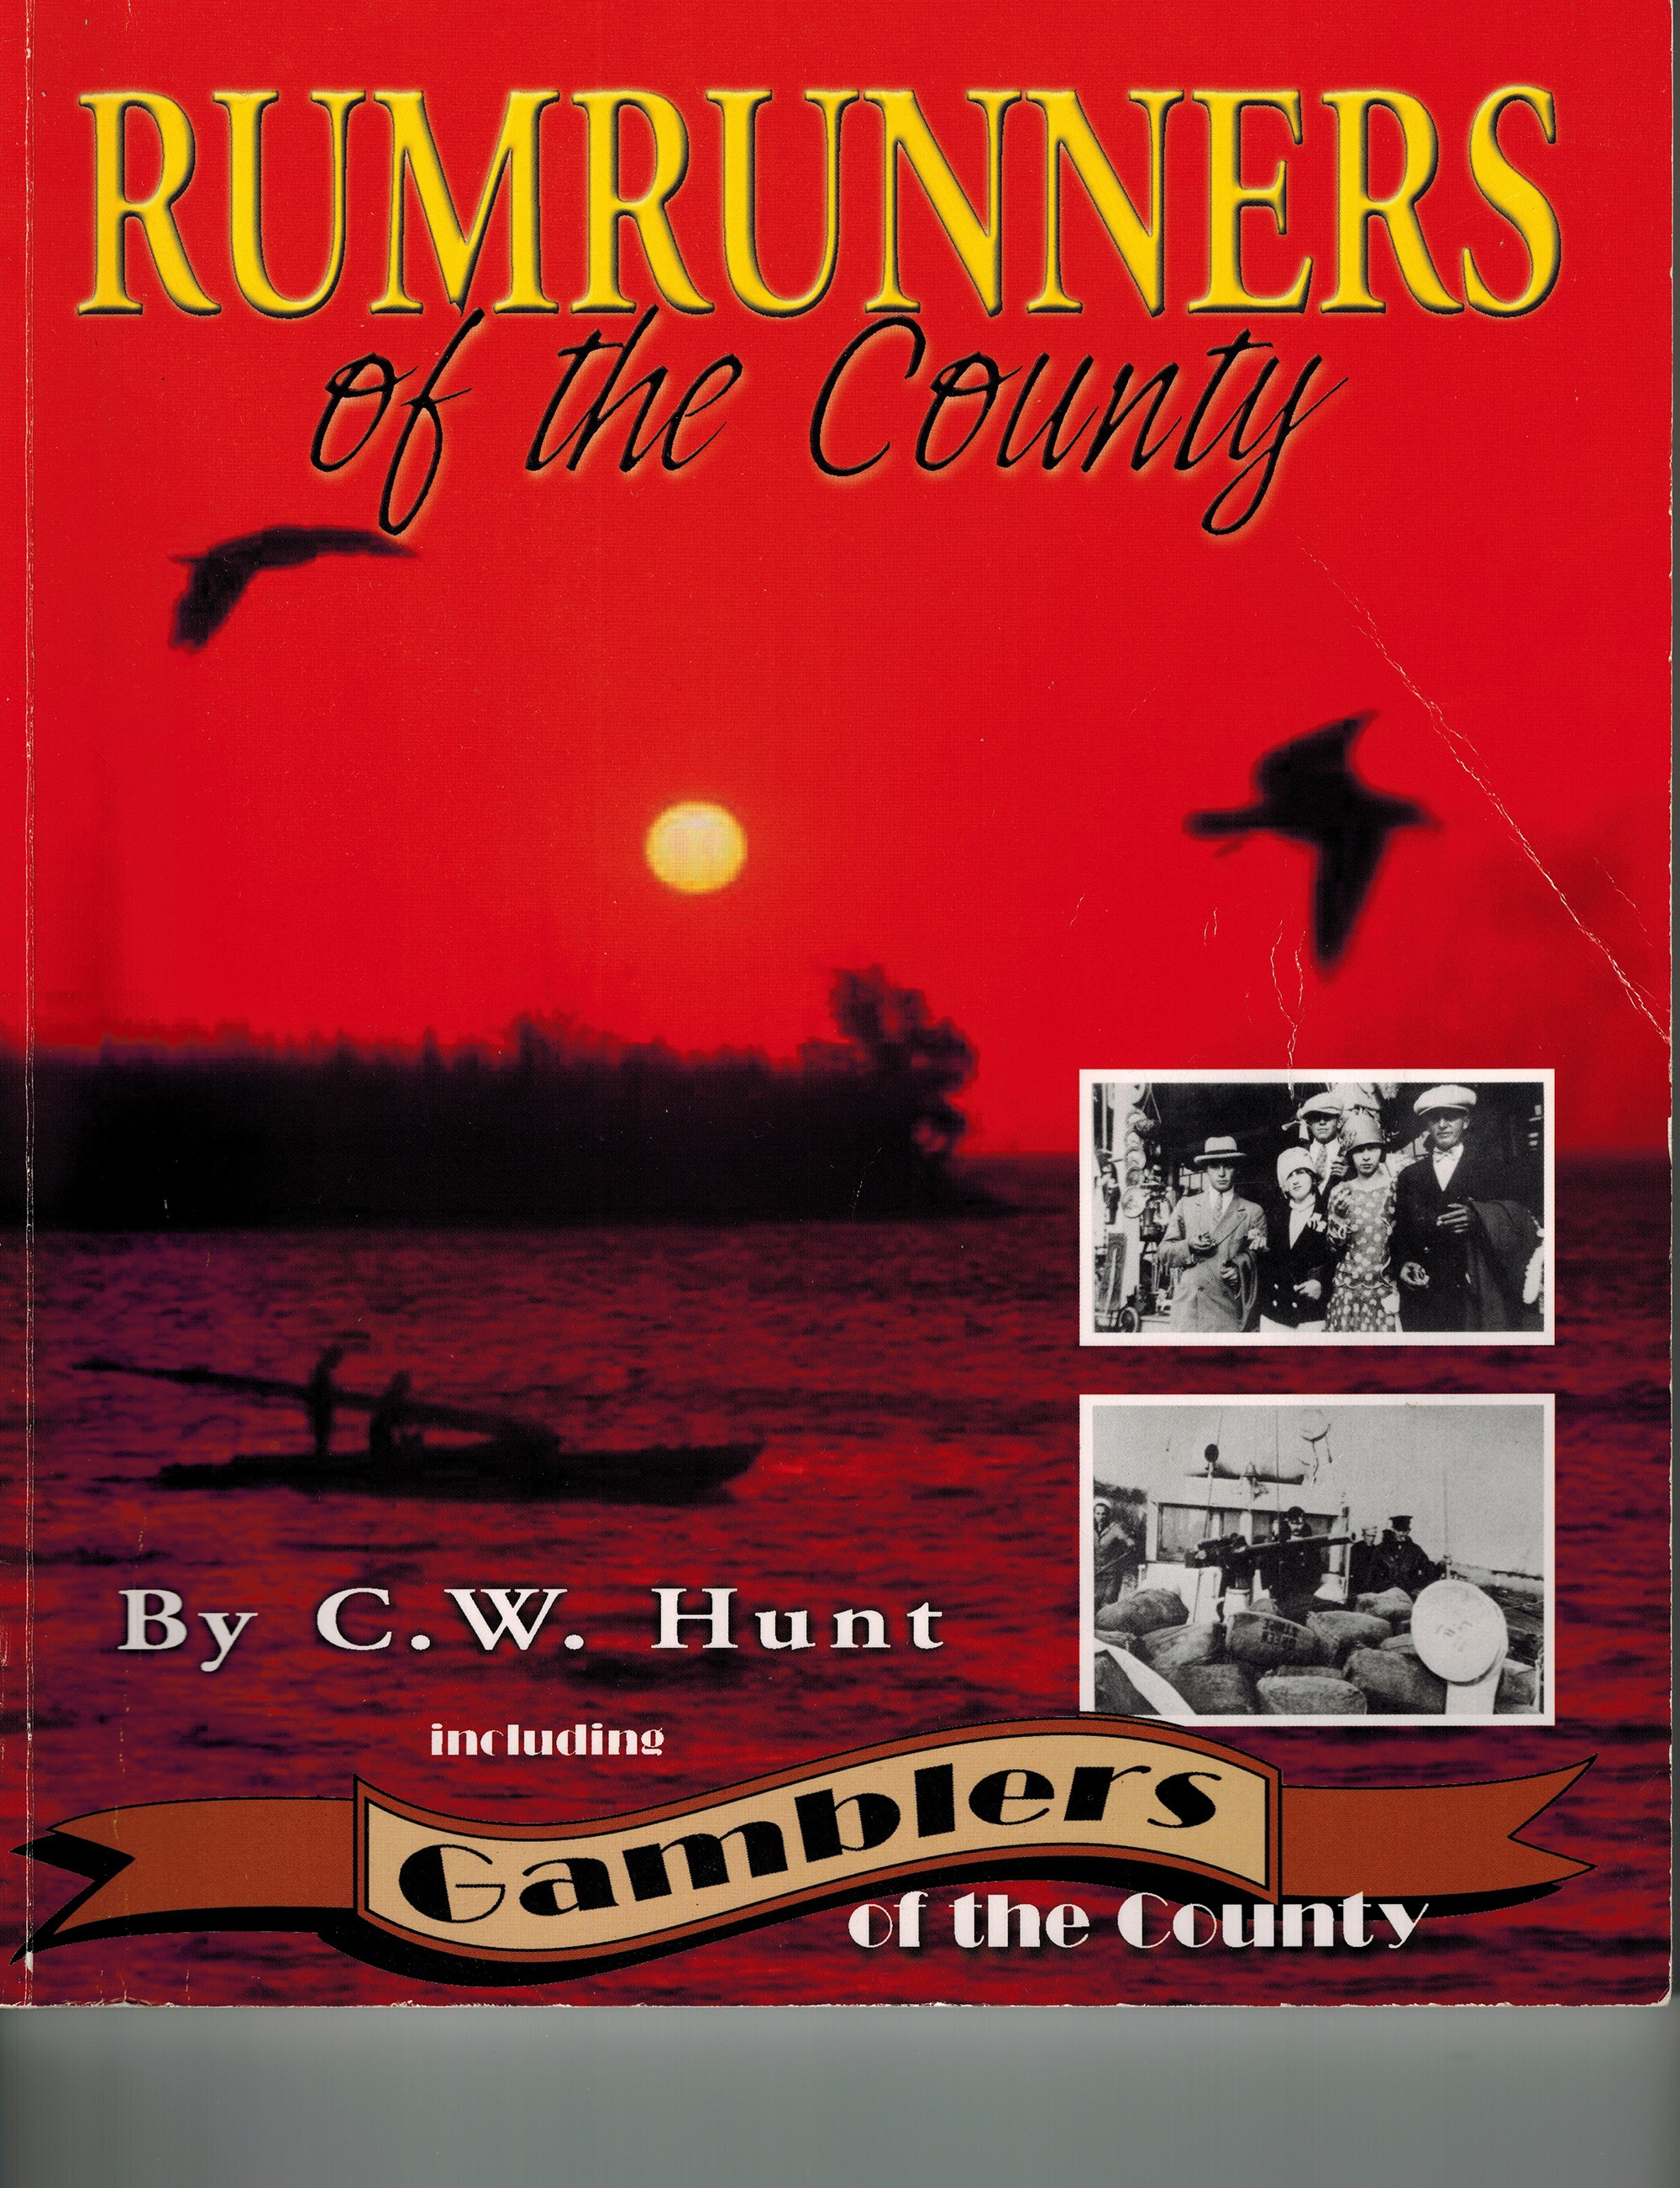 Book cover of  Rumrunners of the County.